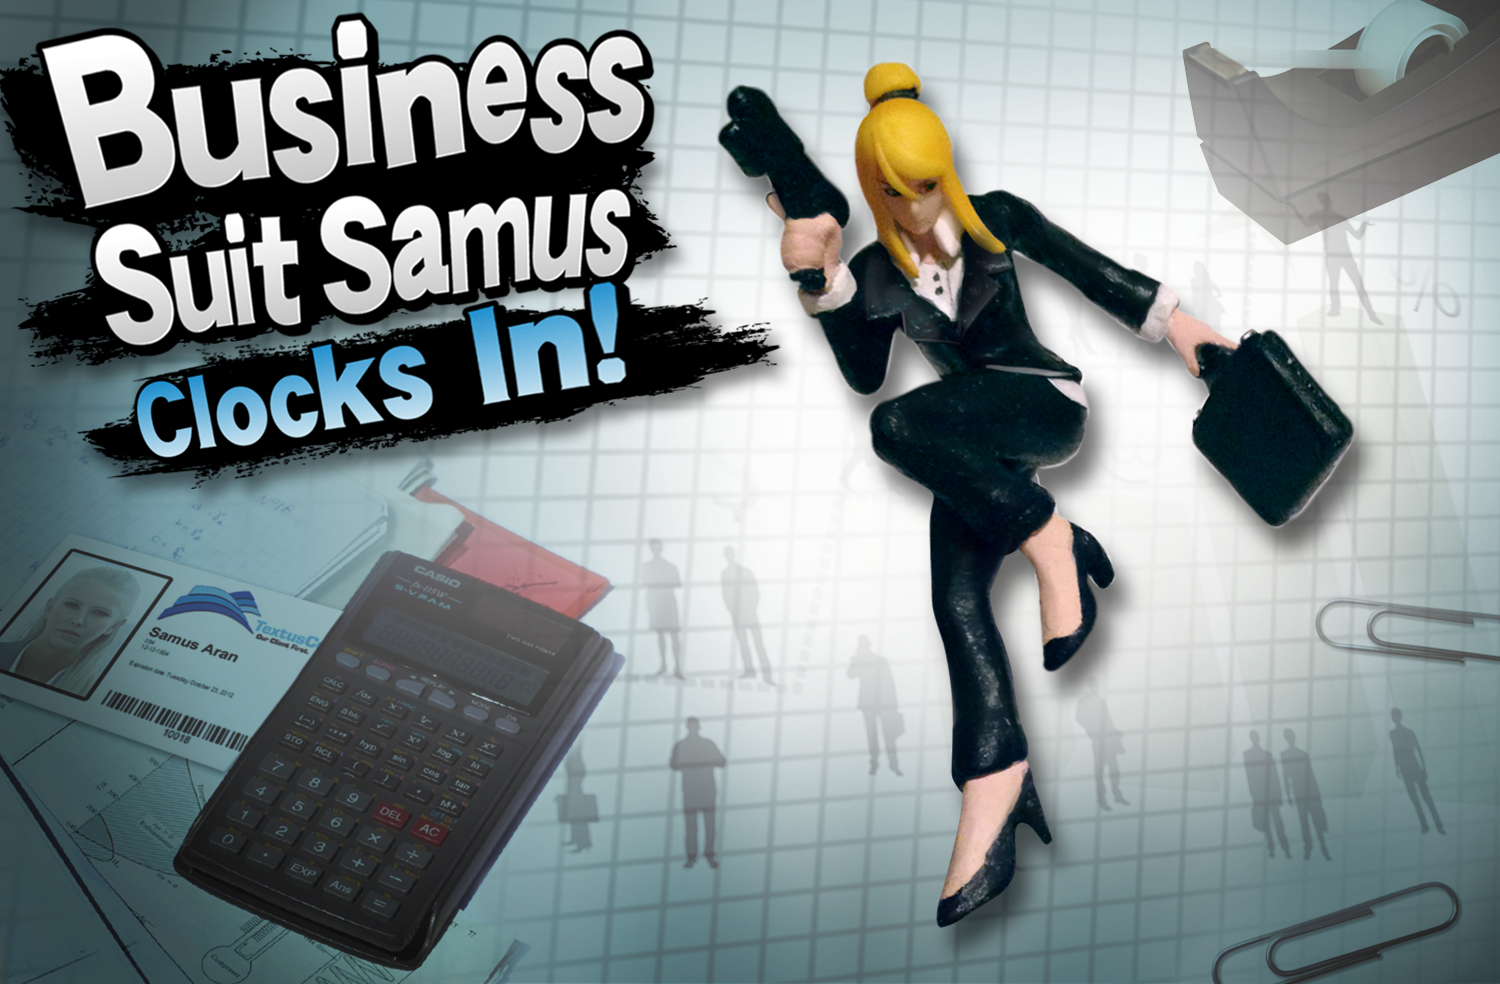 business suit samus clocks in by pavlovs walrus on deviantart